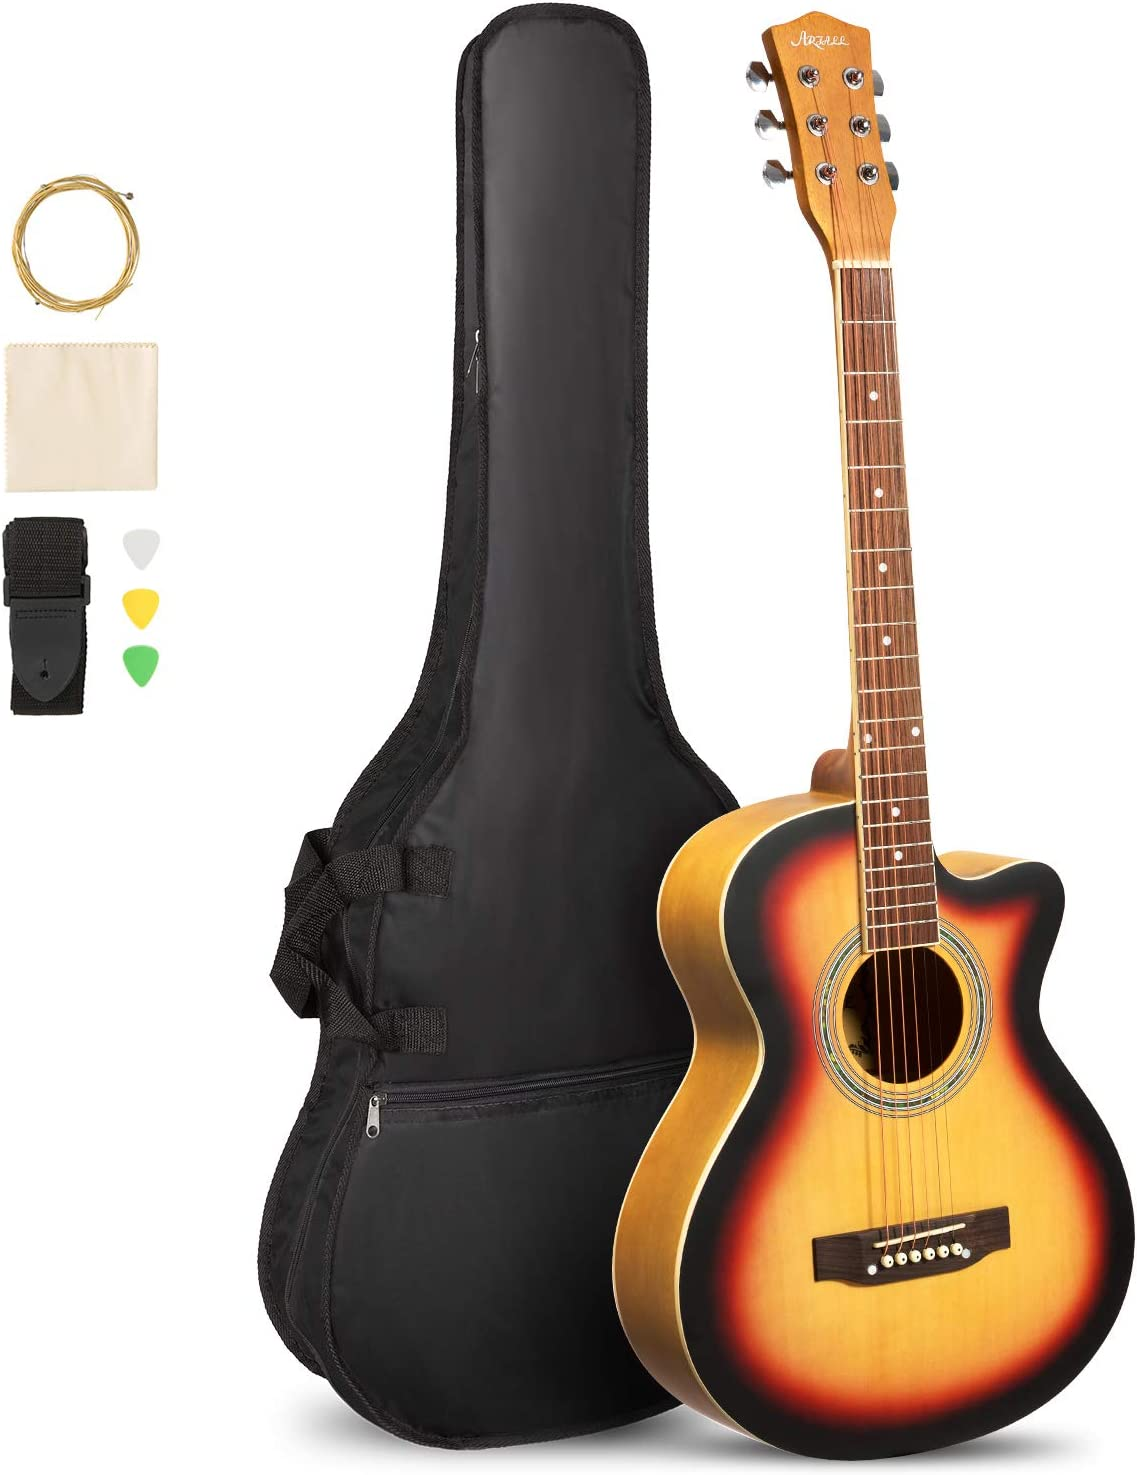 B073WBR1PL ARTALL 39 Inch Handcrafted Acoustic Cutaway Guitar Beginner Kit with Gig bag & Accessories, Matte Sunset 61wtxIRvpjL